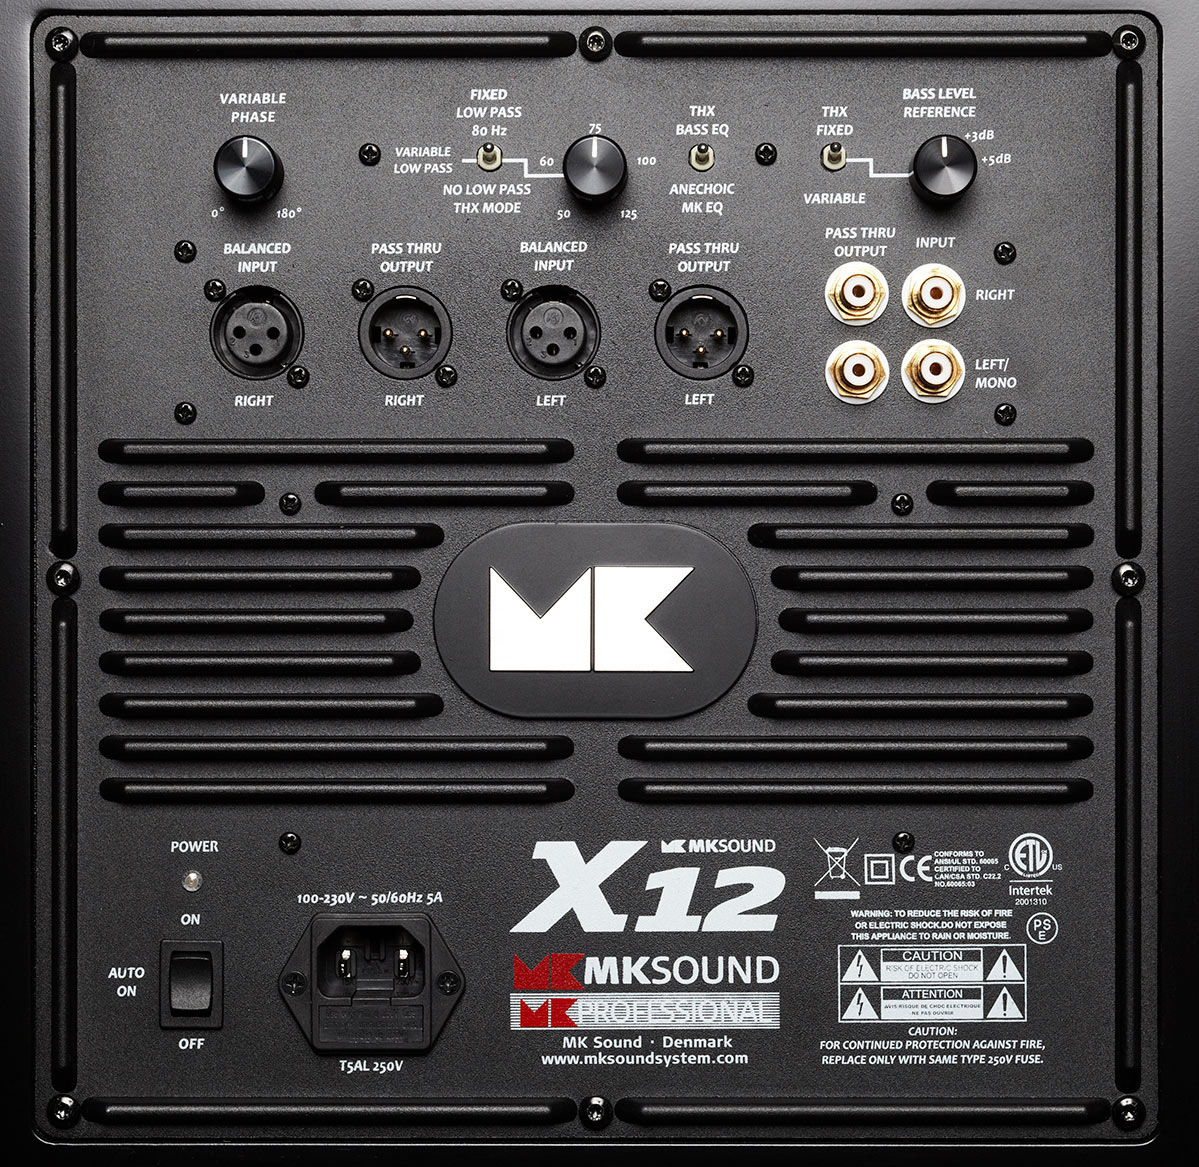 X10 Subwoofer Mk Sound Wiring Devices Qatar Integrates Woofer And Amplifcation To Achieve Elegance Brute Force In A High Tech Low Profile Package That Proves Defnitively Fast